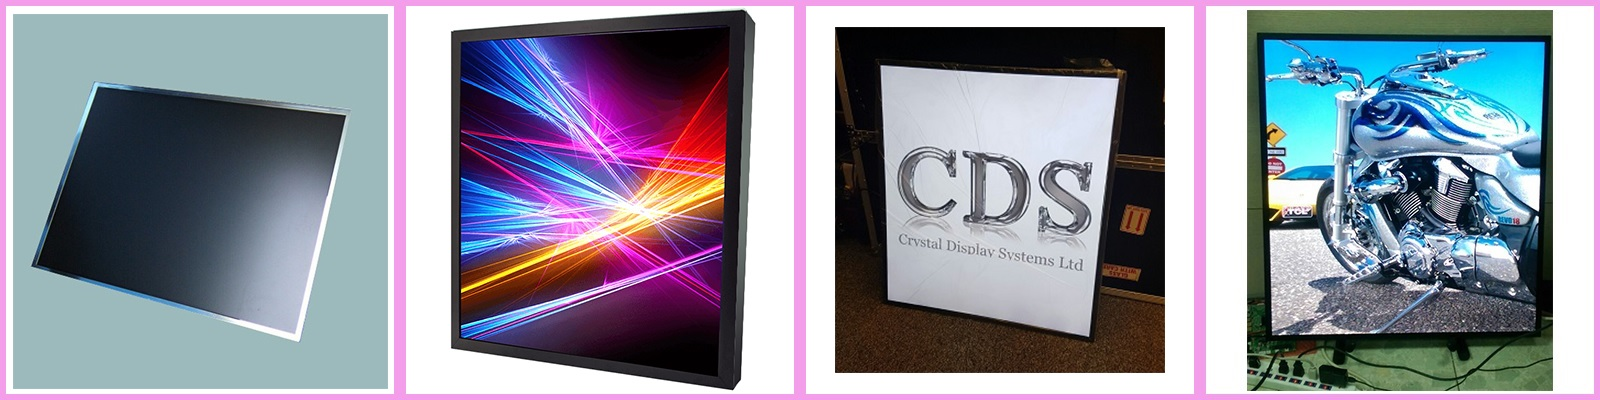 square displays cds